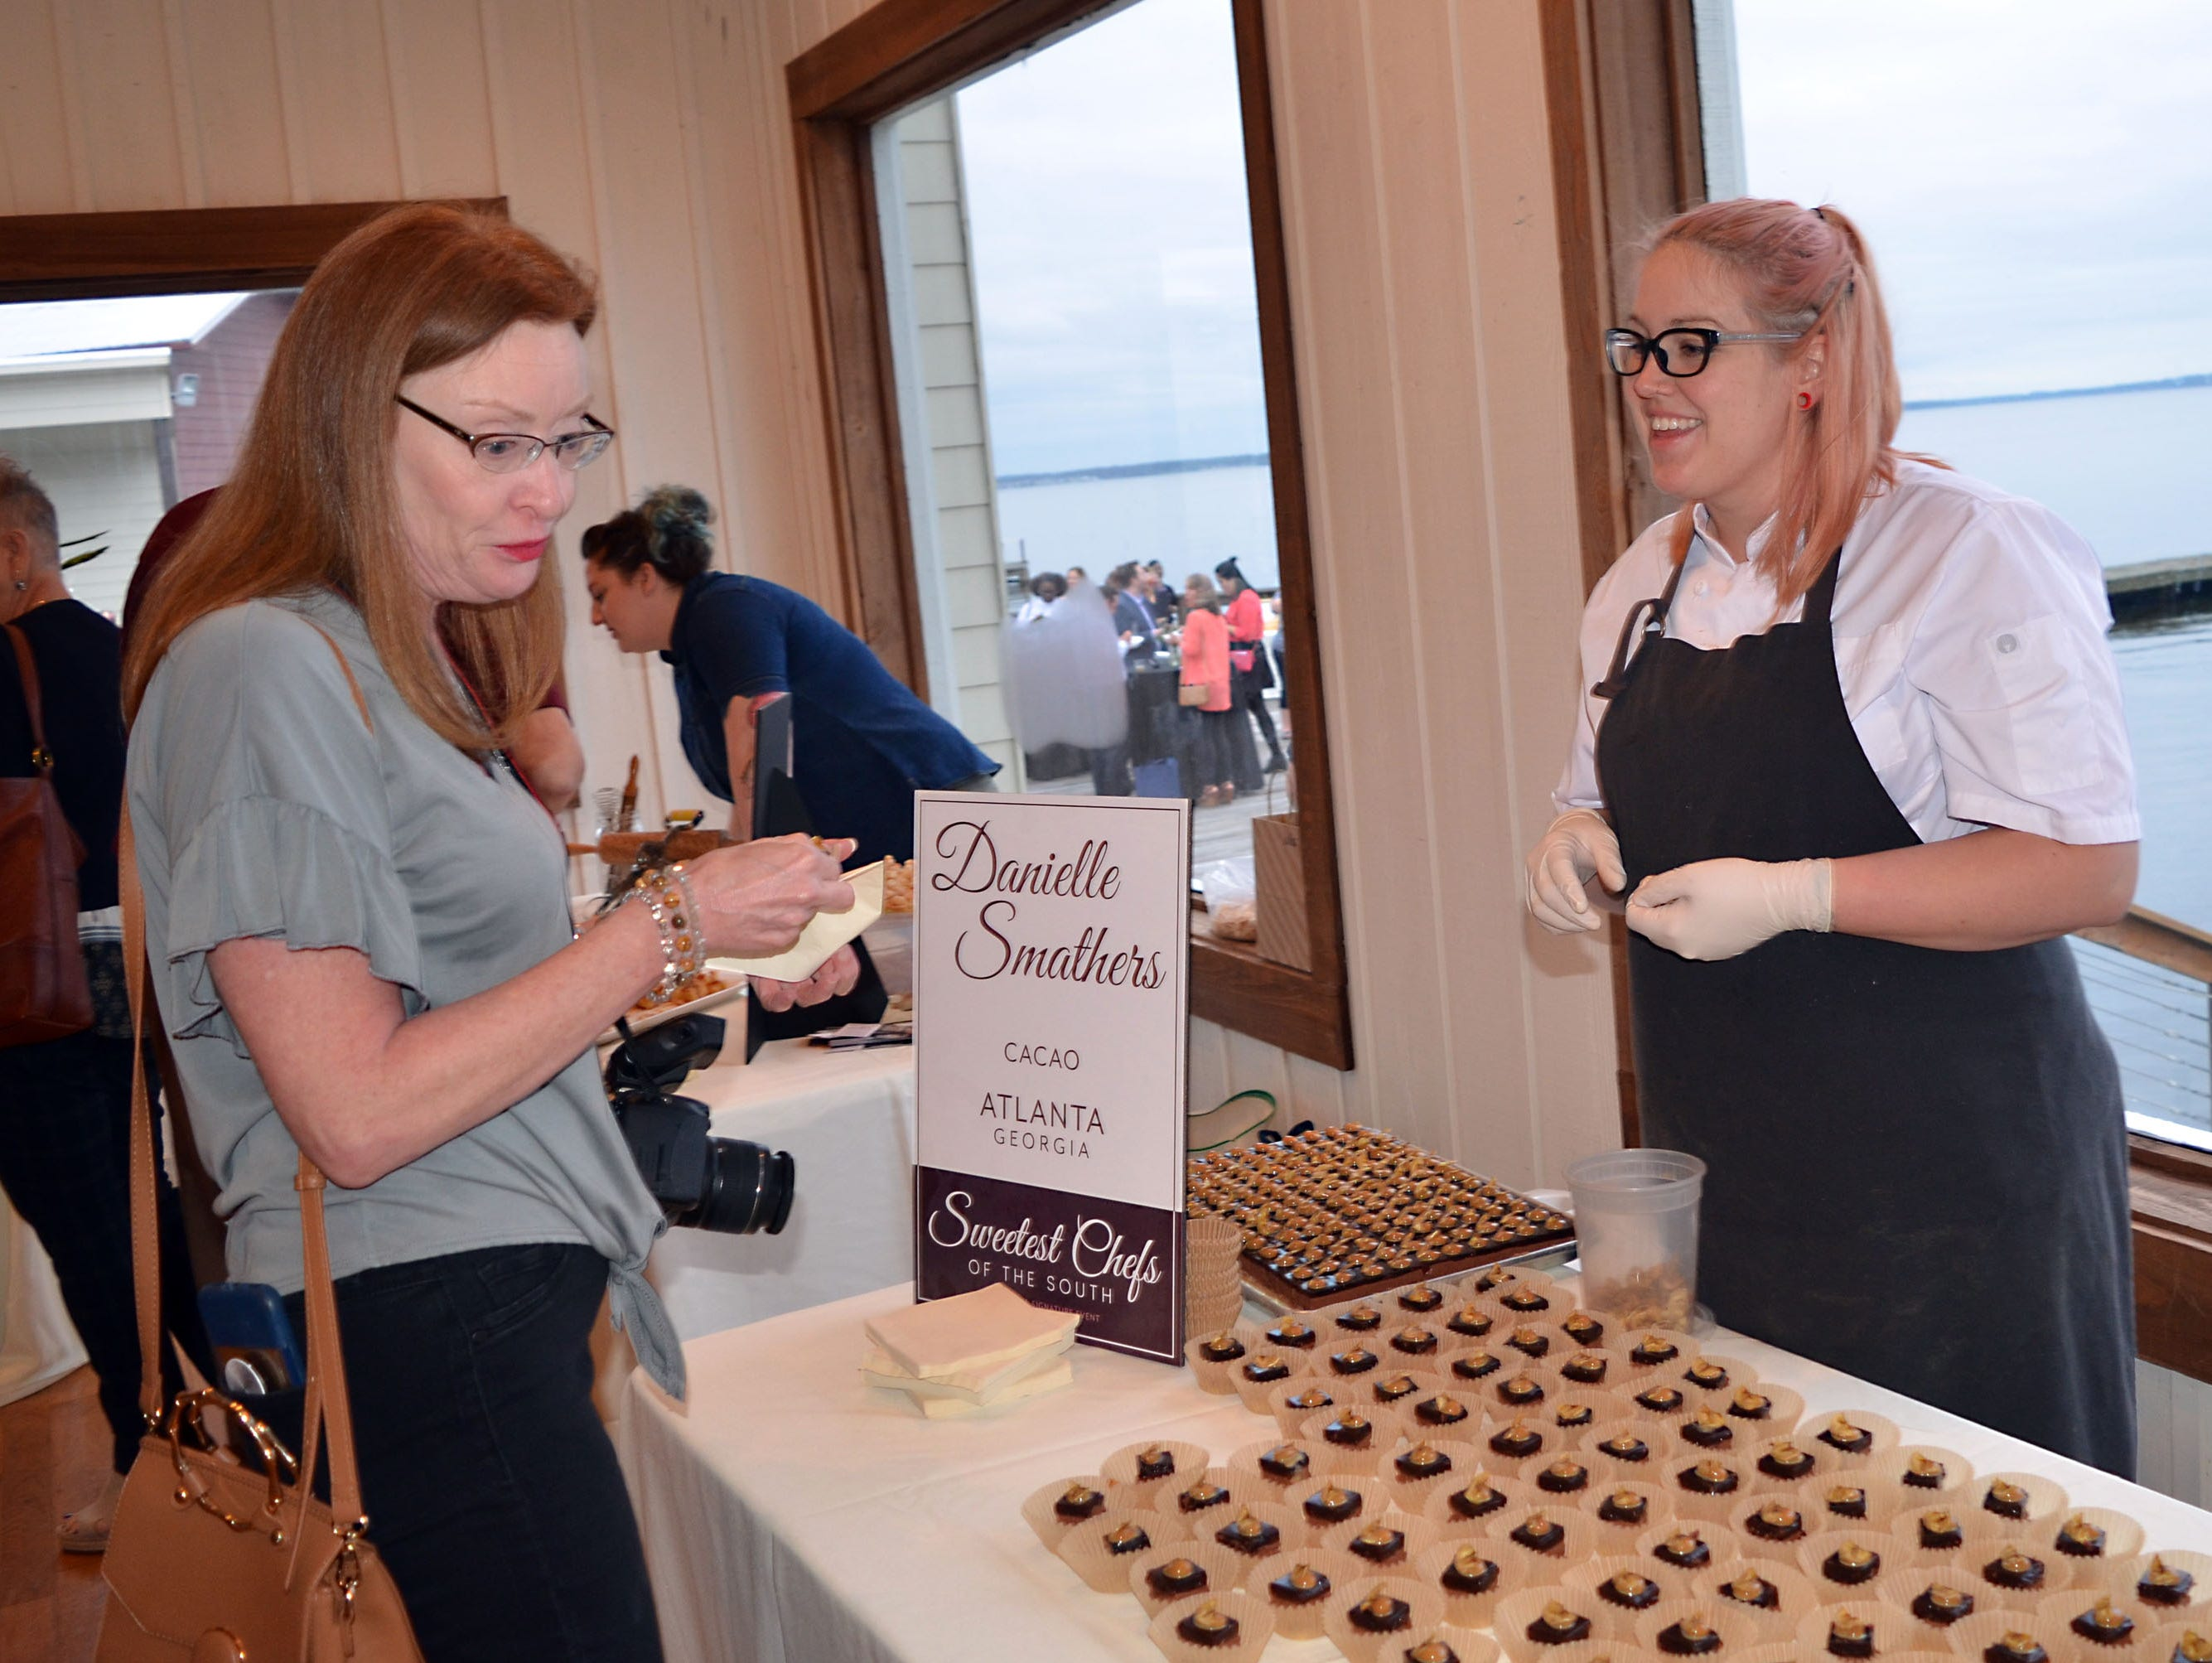 Kelly Mott, left, enjoys the delicious Banana Split Moose Cake prepared by one of the Sweetest Chefs, Danielle Smathers, with Cacoa of Atlanta.